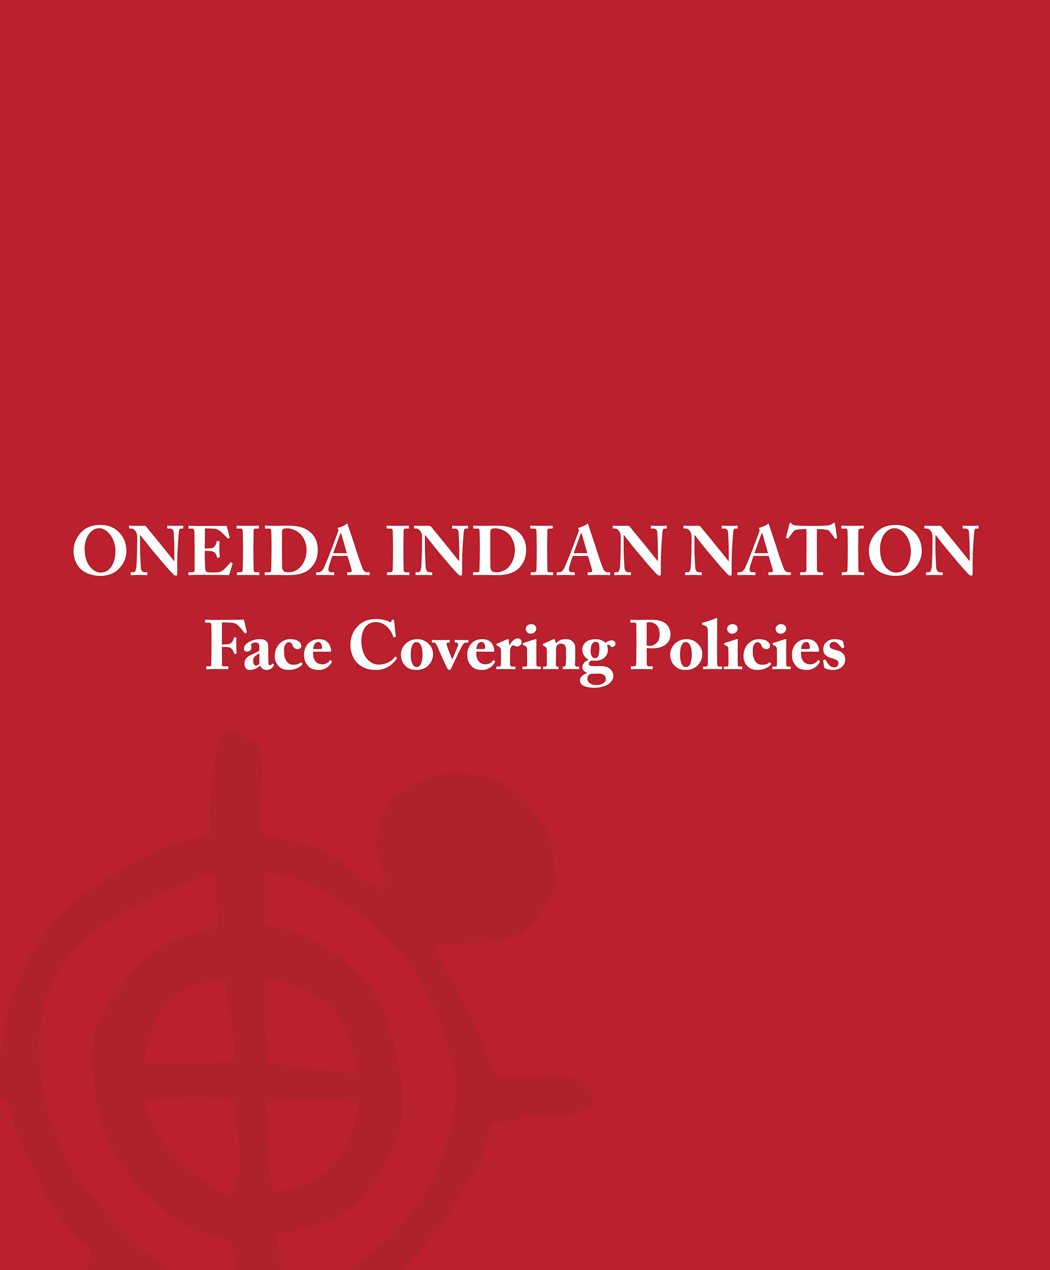 Face Covering Policies